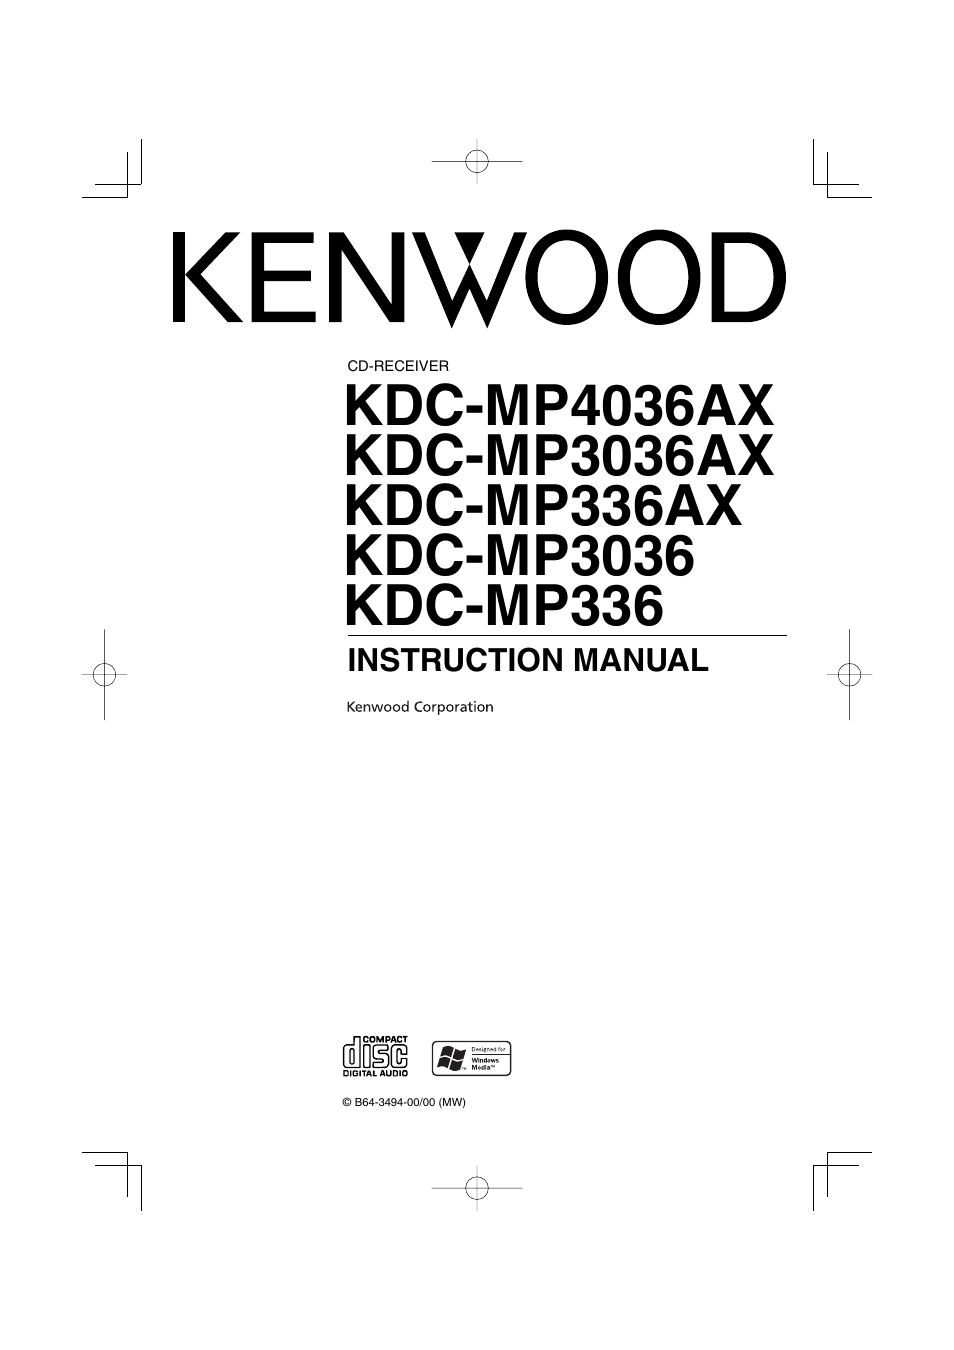 kenwood kdc mp336ax user manual 28 pages also for kdc mp3036ax rh manualsdir com Kenwood 617 DVD Owner's Manual Kdc-Mp Kenwood User Manuals